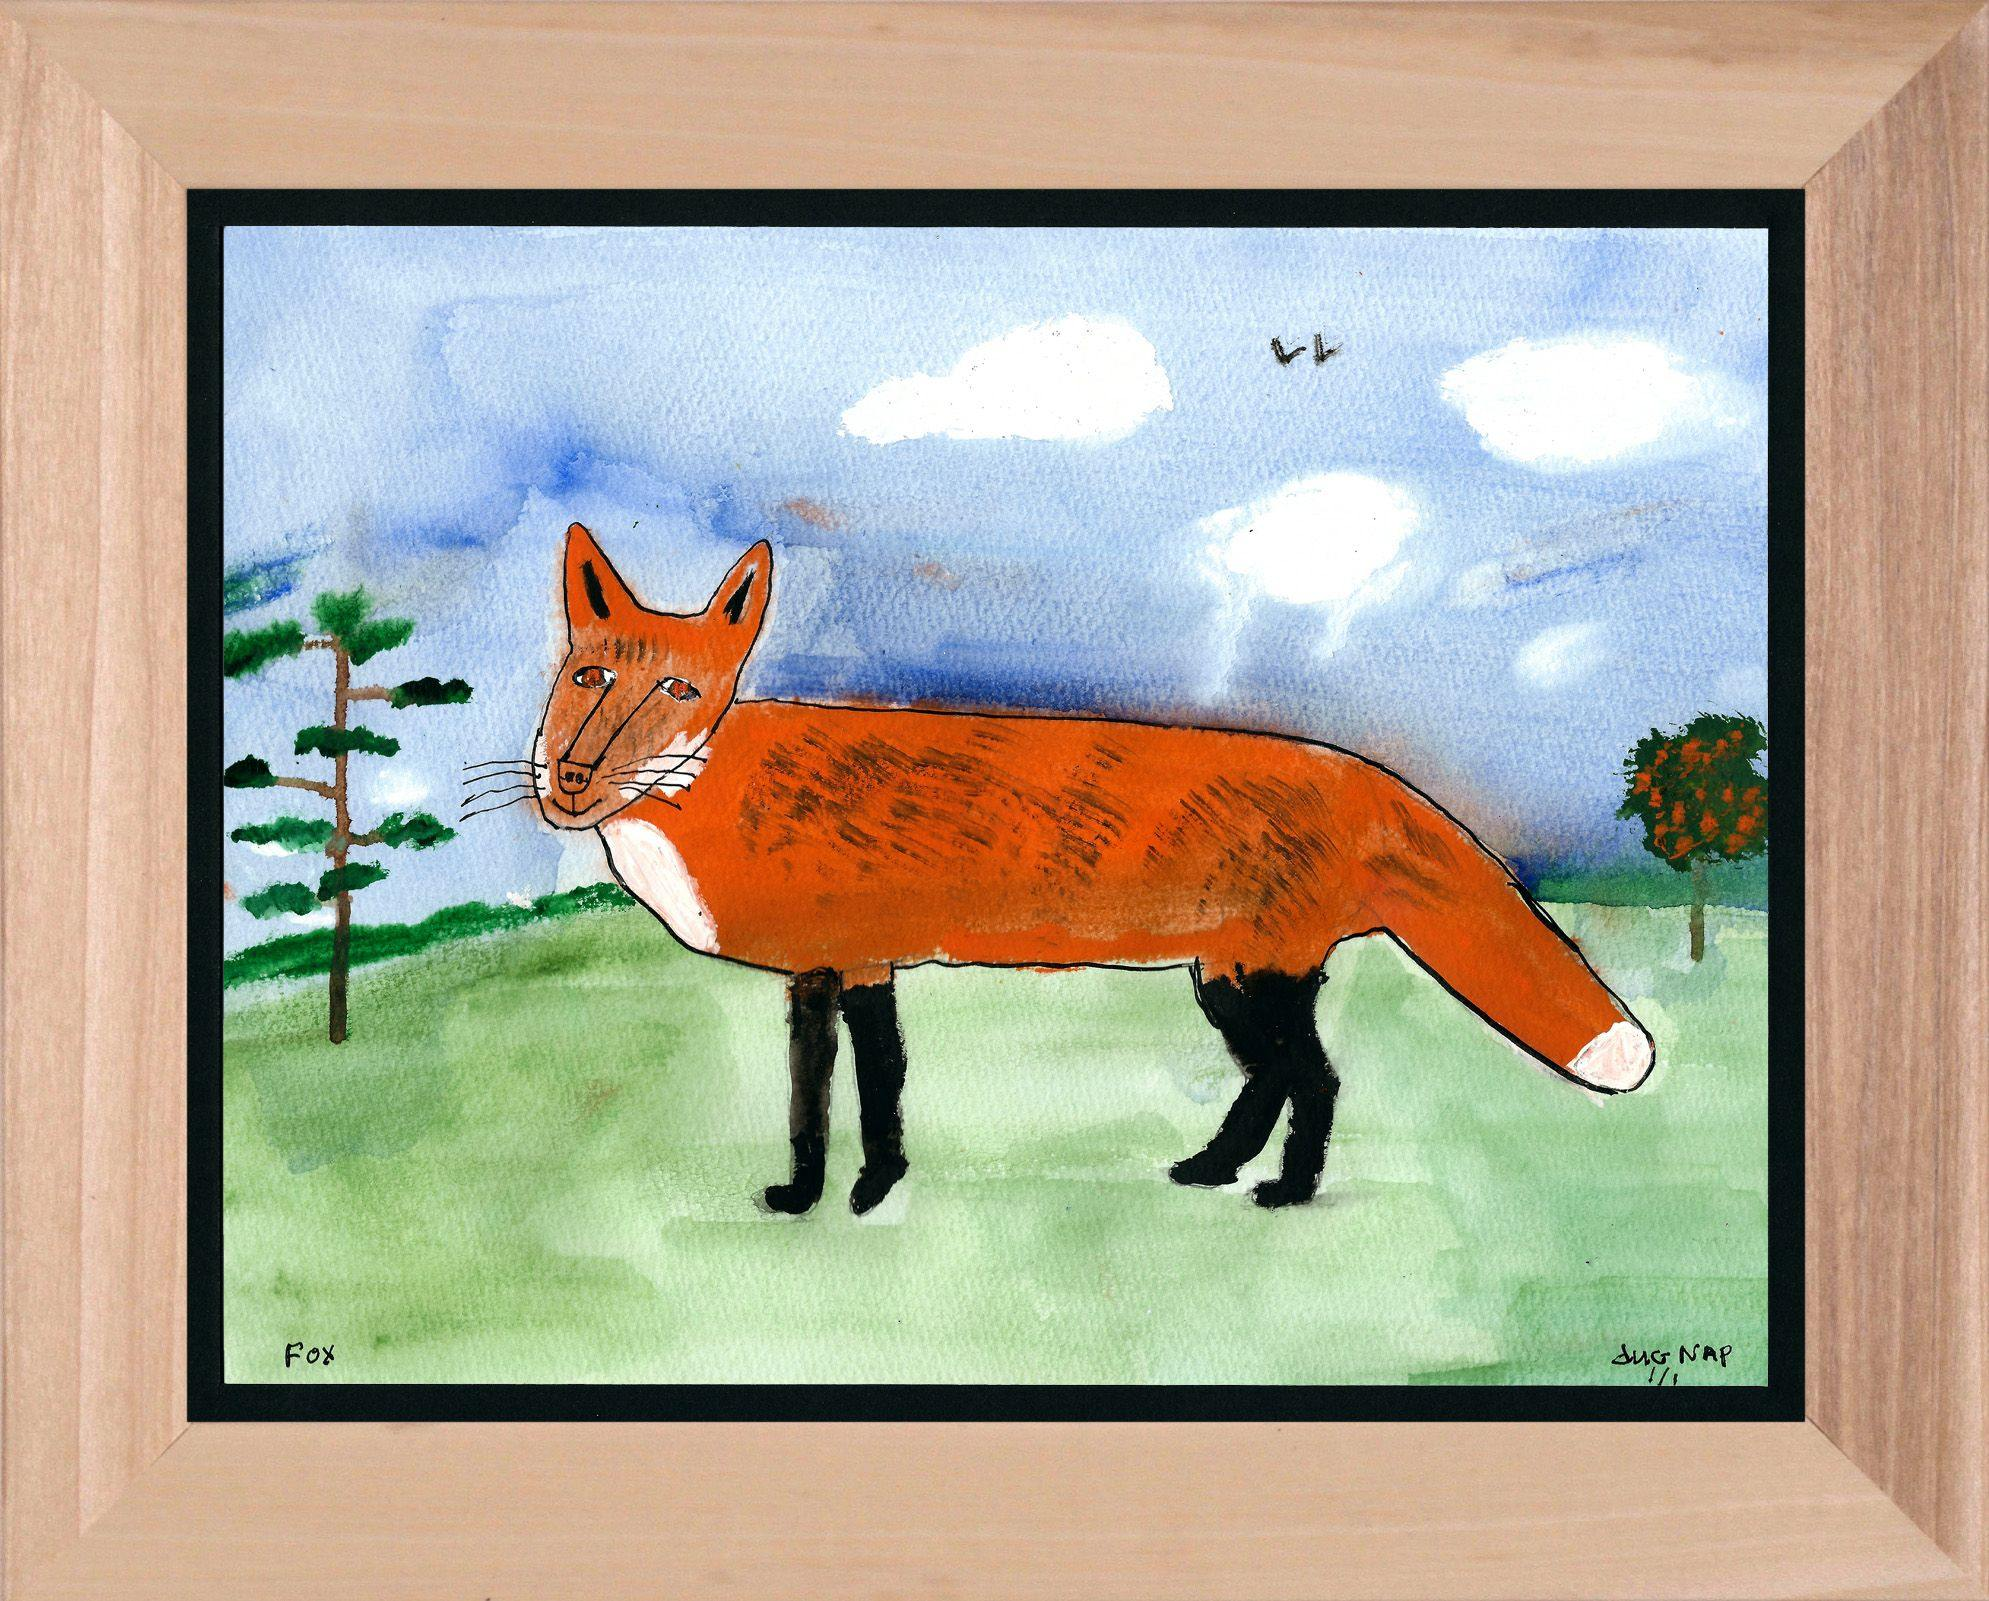 Fox in a Field - 8.5x11 Watercolor and Pen on Paper - dug Nap Art